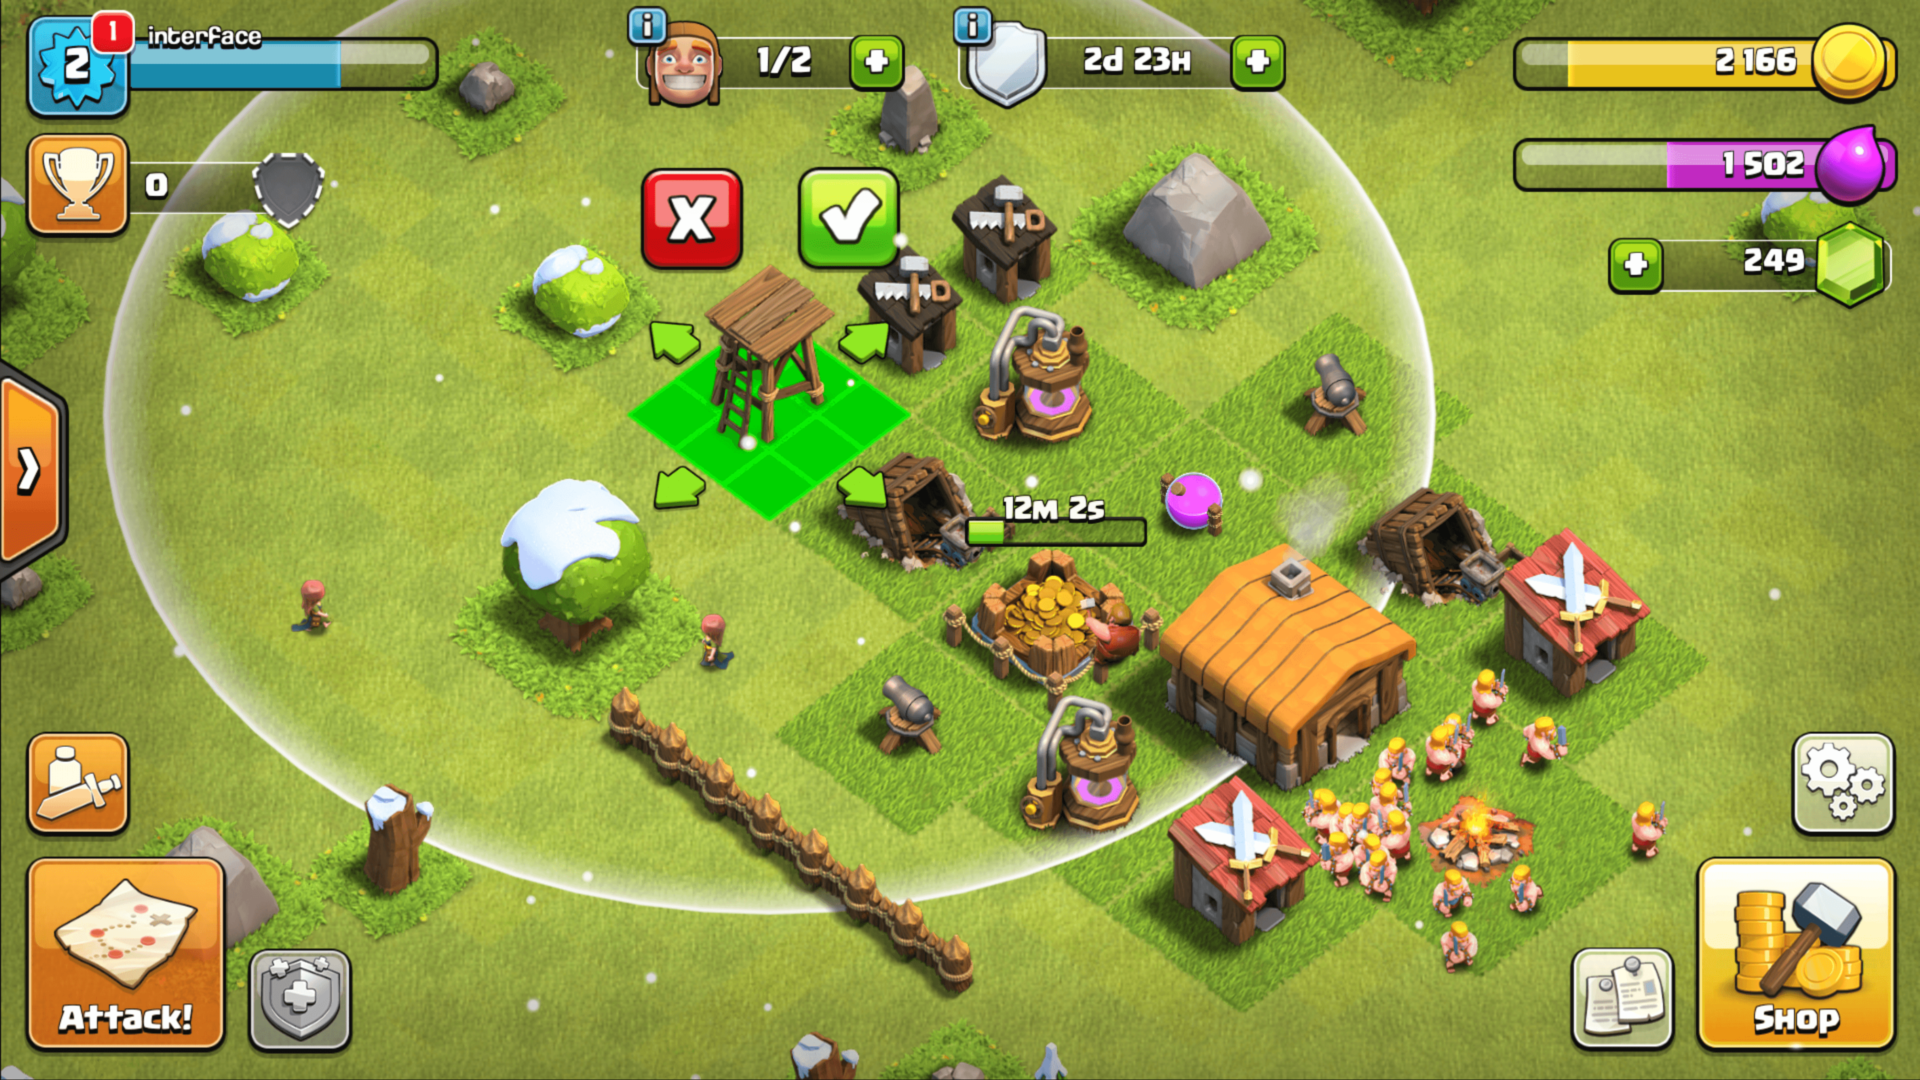 Construct screenshot of Clash of Clans video game interface.